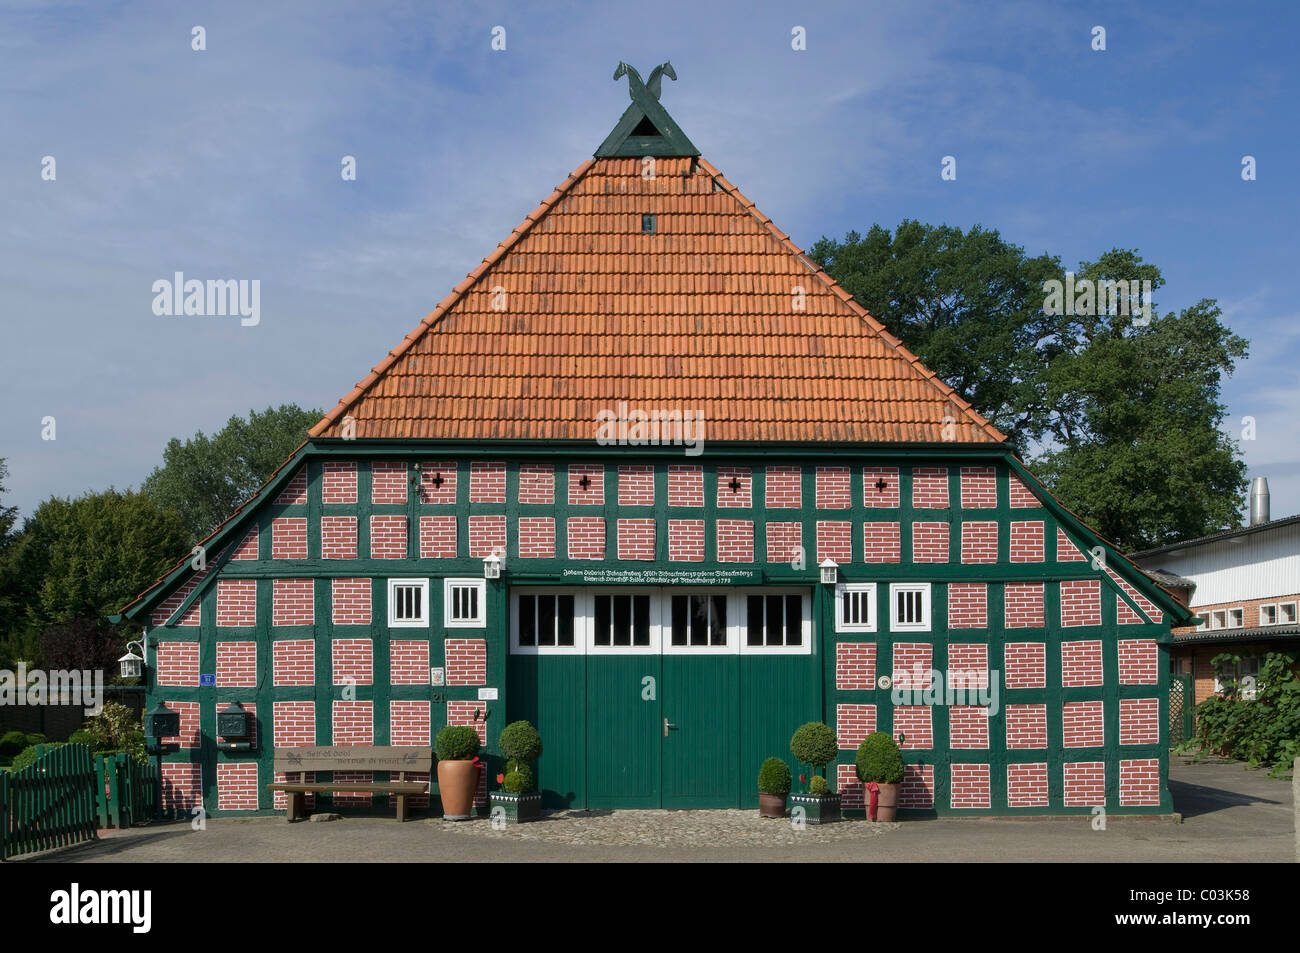 Amtsschreibershof, scribe's Building, construit en 1793, restauré bâtiment à colombages, Rothenburg Photo Stock